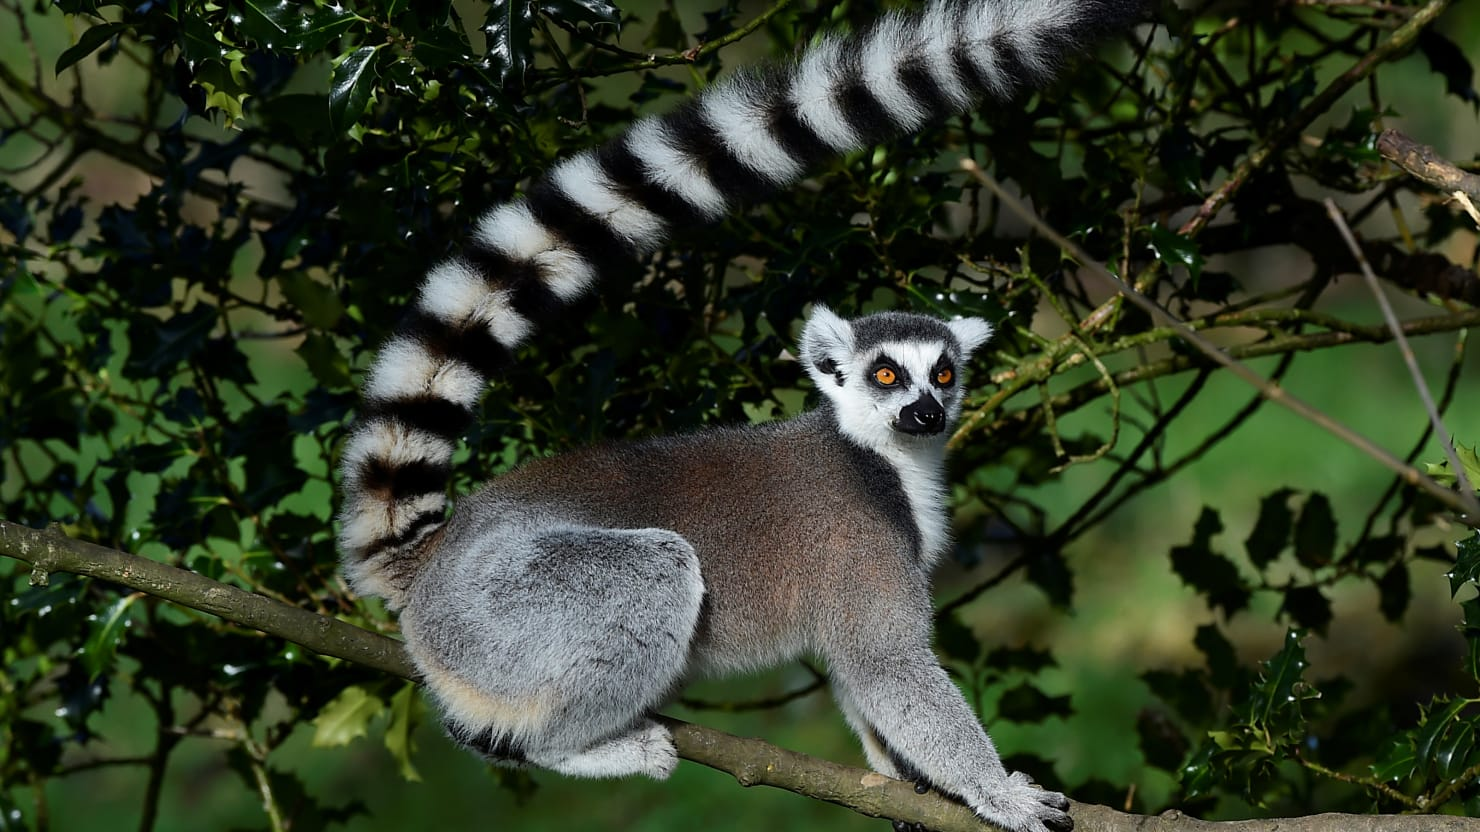 California Man Pleads Guilty to Stealing Endangered Lemur from Zoo